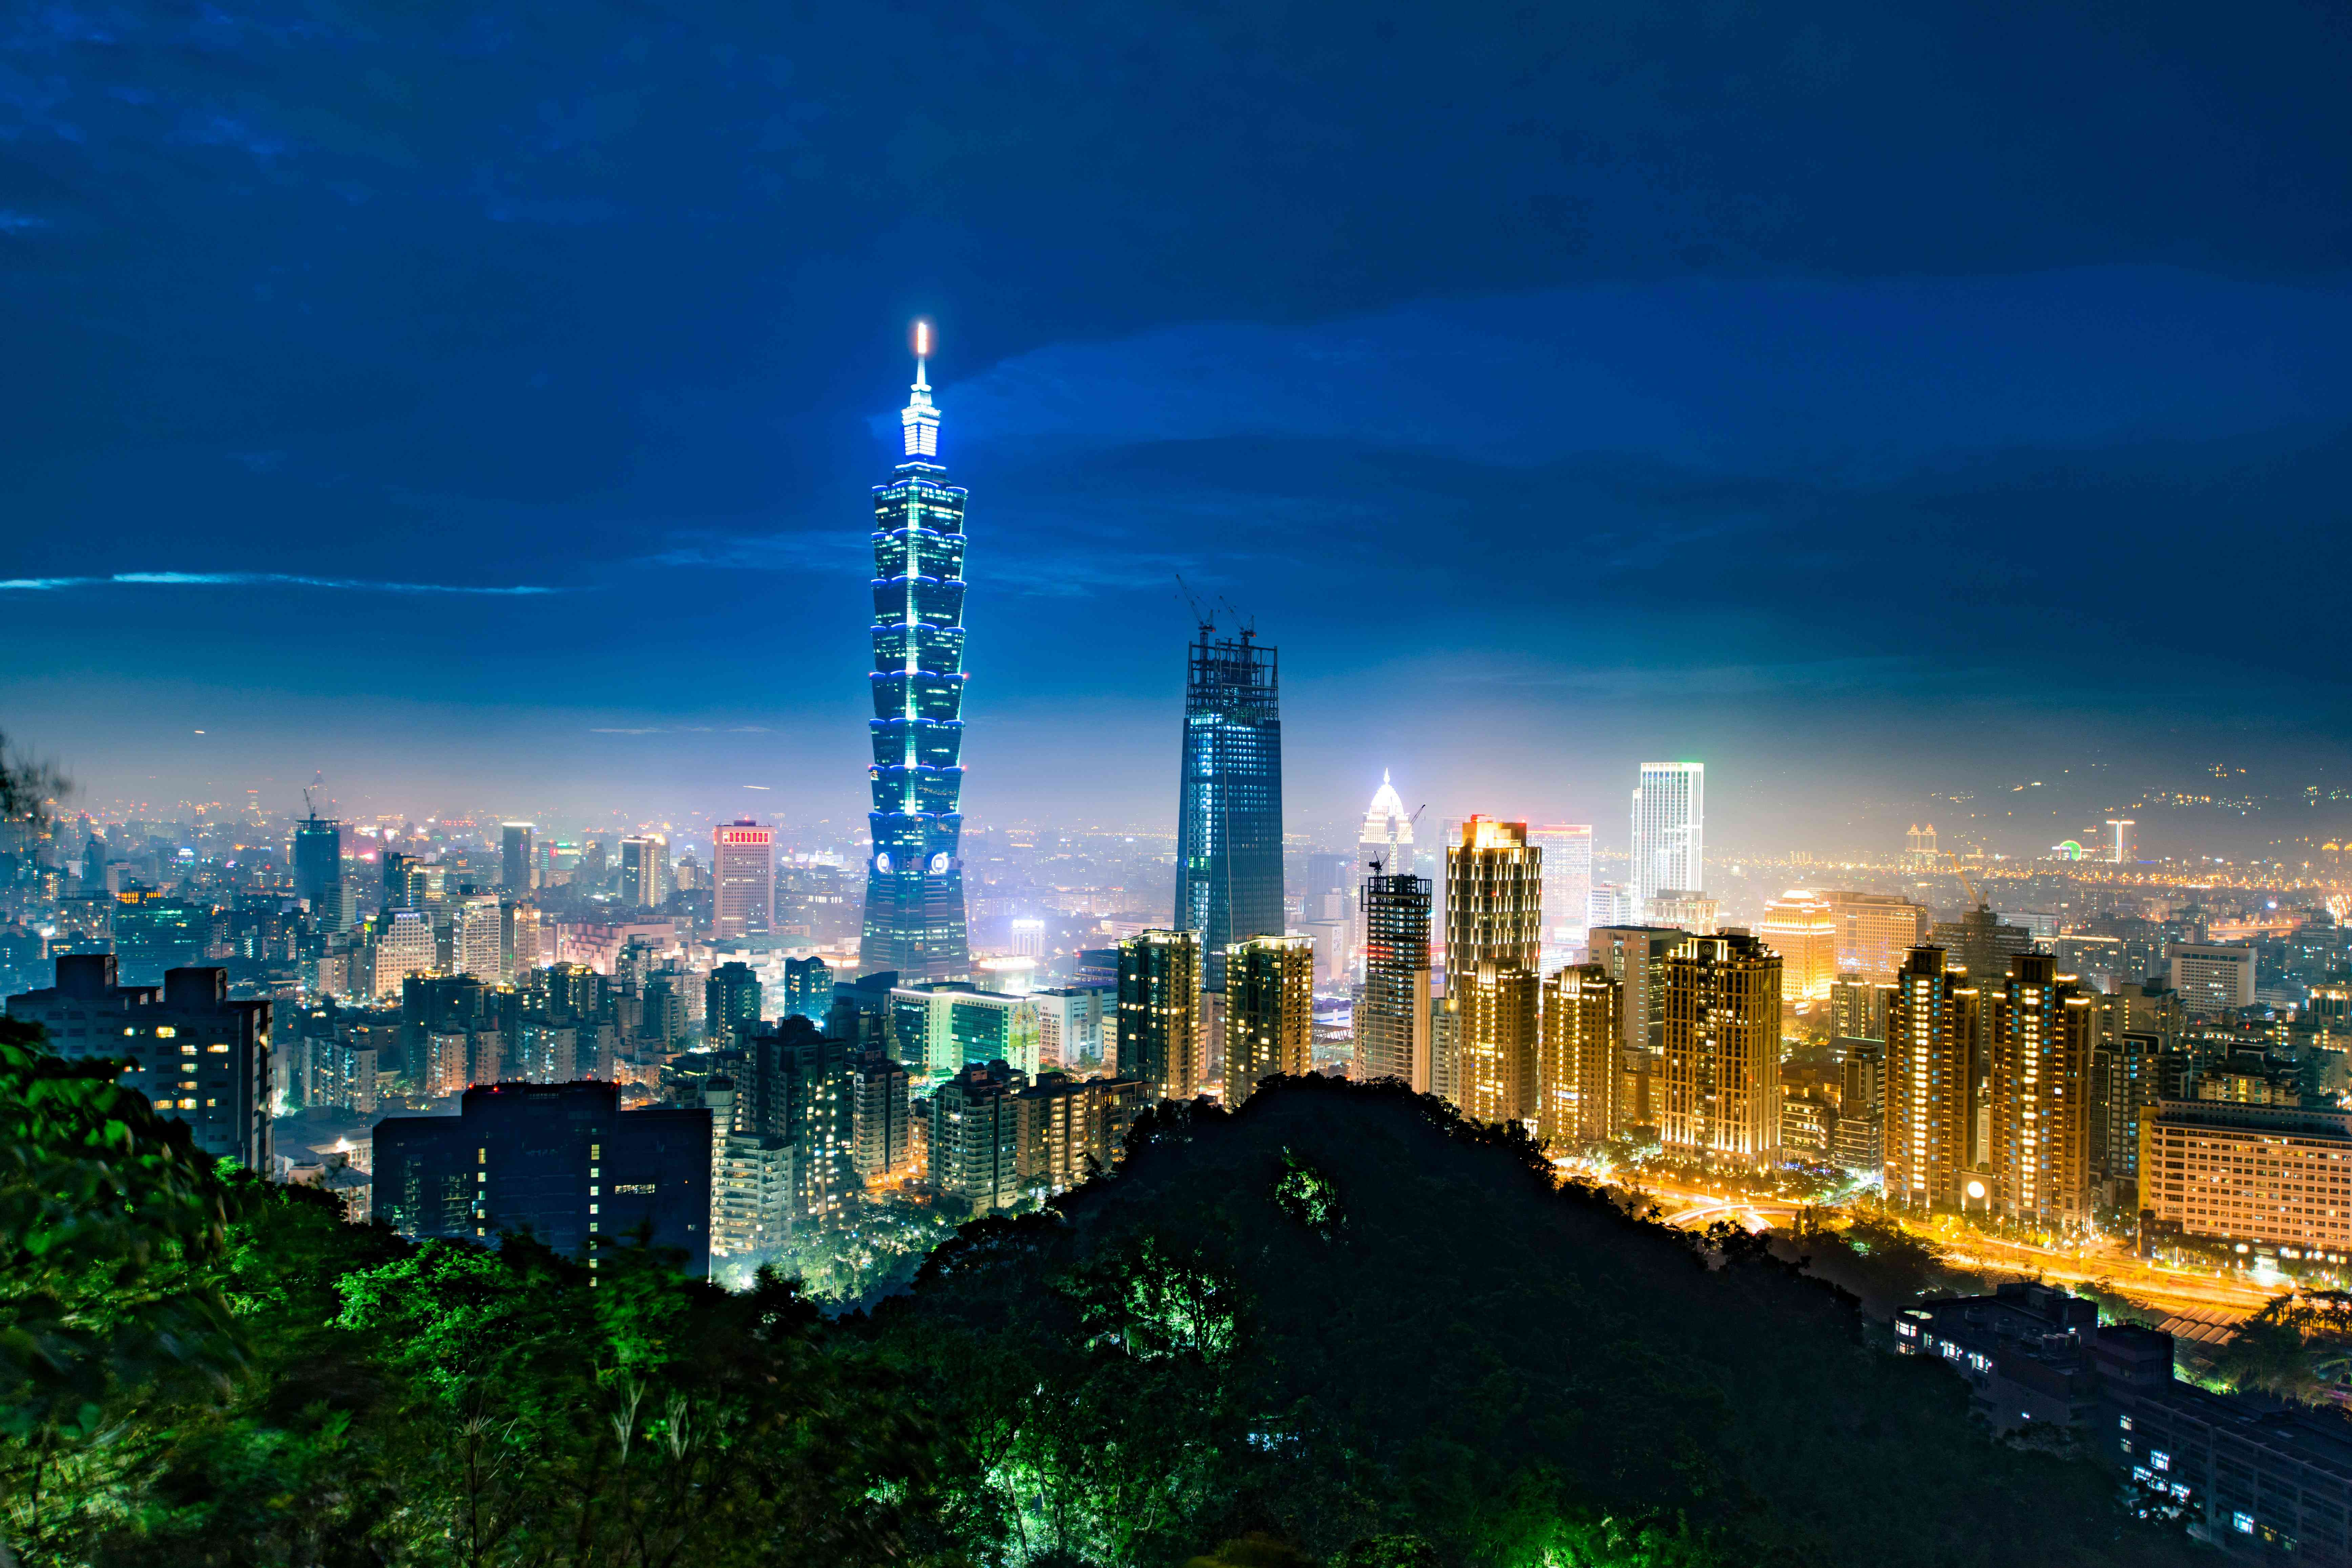 The dramatic lights of Taiwan's capital city, Taipei, surrounding the immense and iconic skyscraper Taipei 101